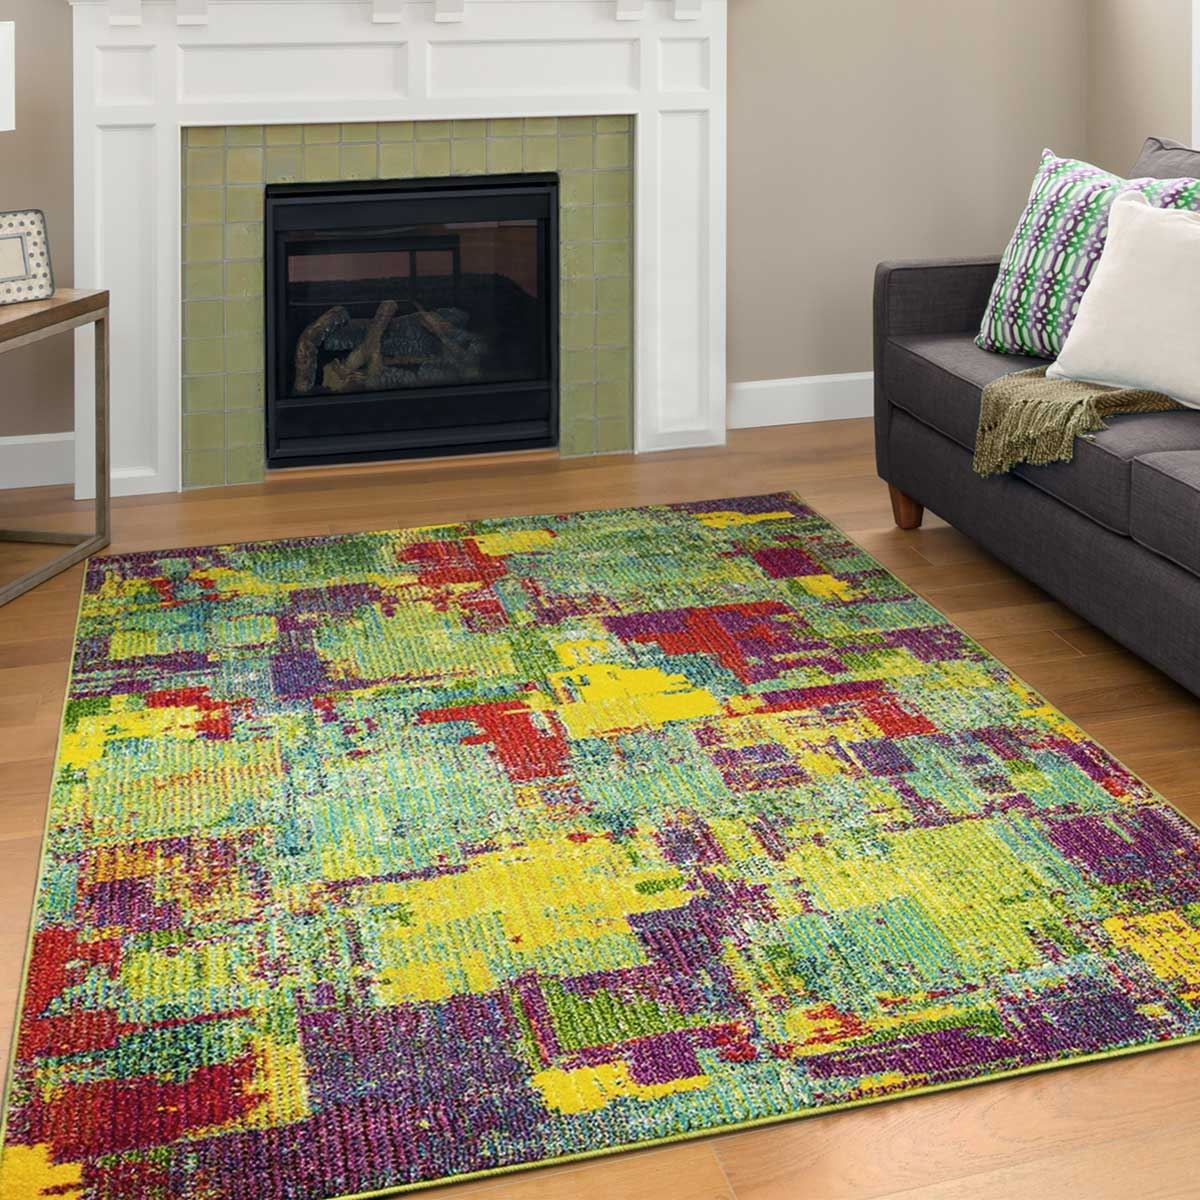 Details About Colourful Rug Large Sizes Runner Area Rugs Rio Design Multi Colours Carpet